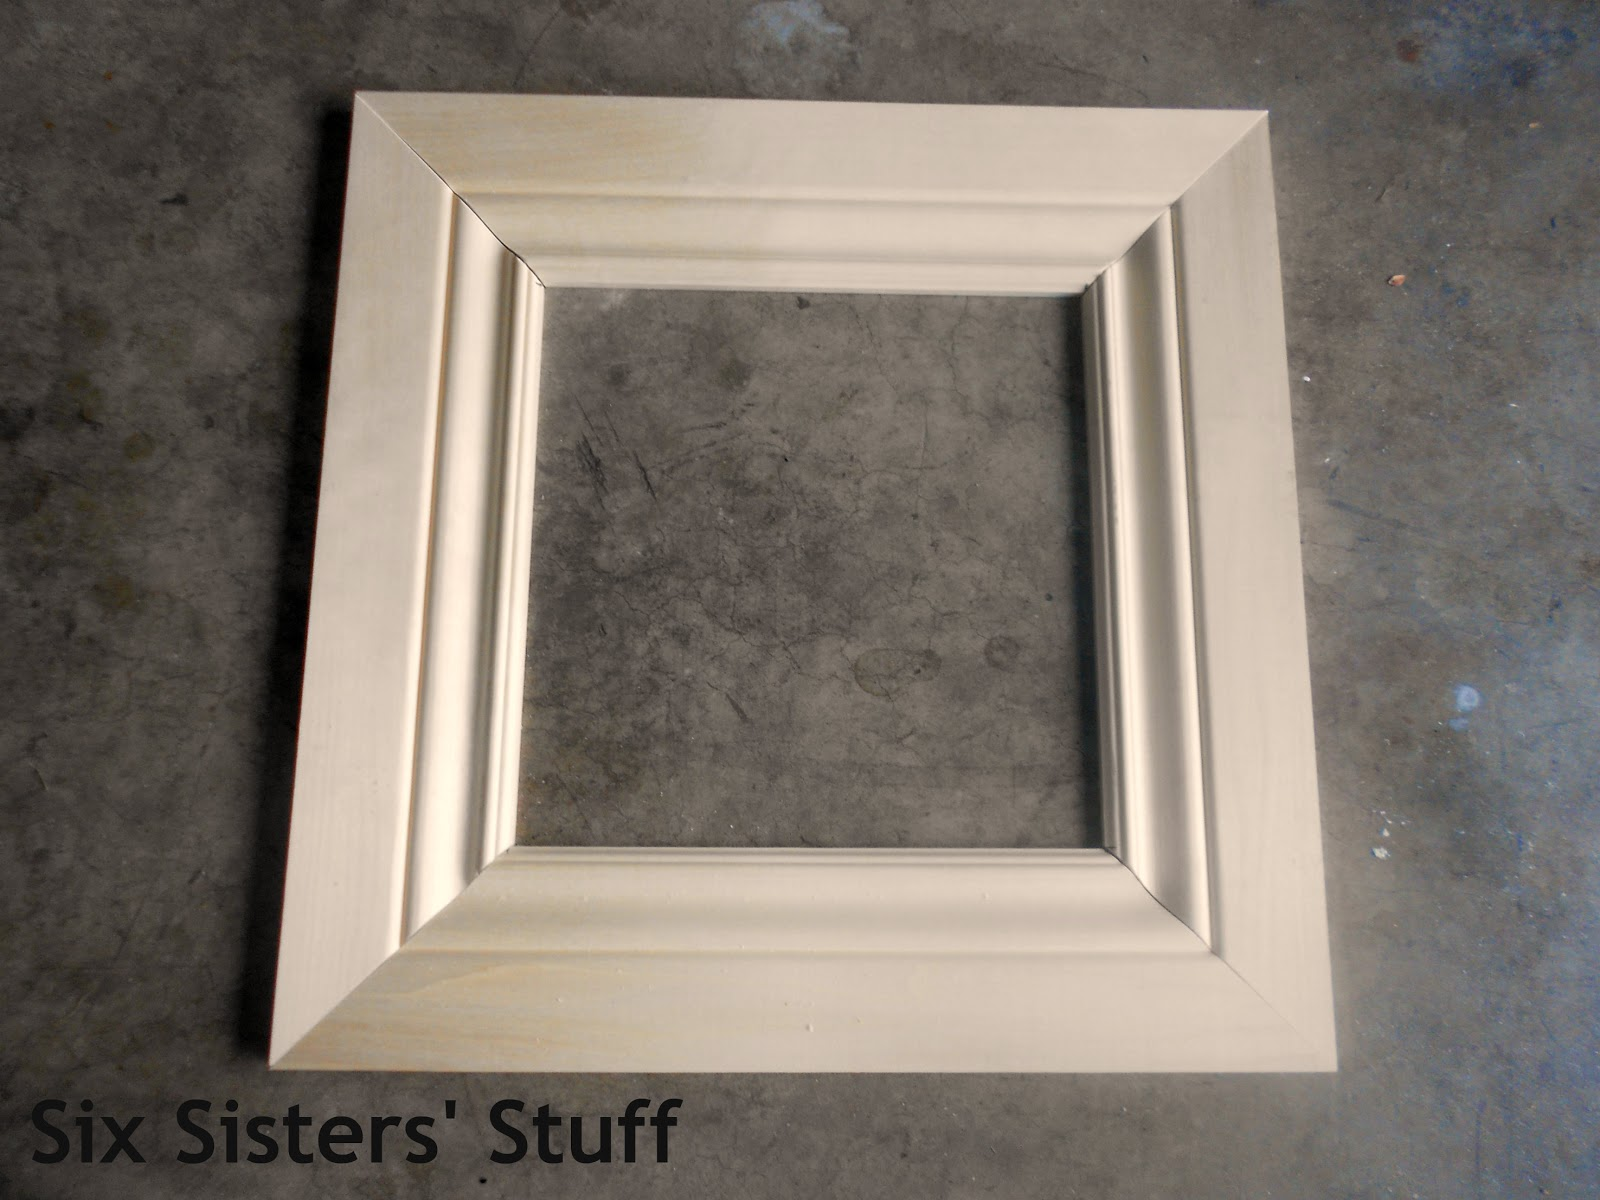 Diy Crown Moulding Picture Frames Lowe S 50 And Change Project Six Sisters Stuff